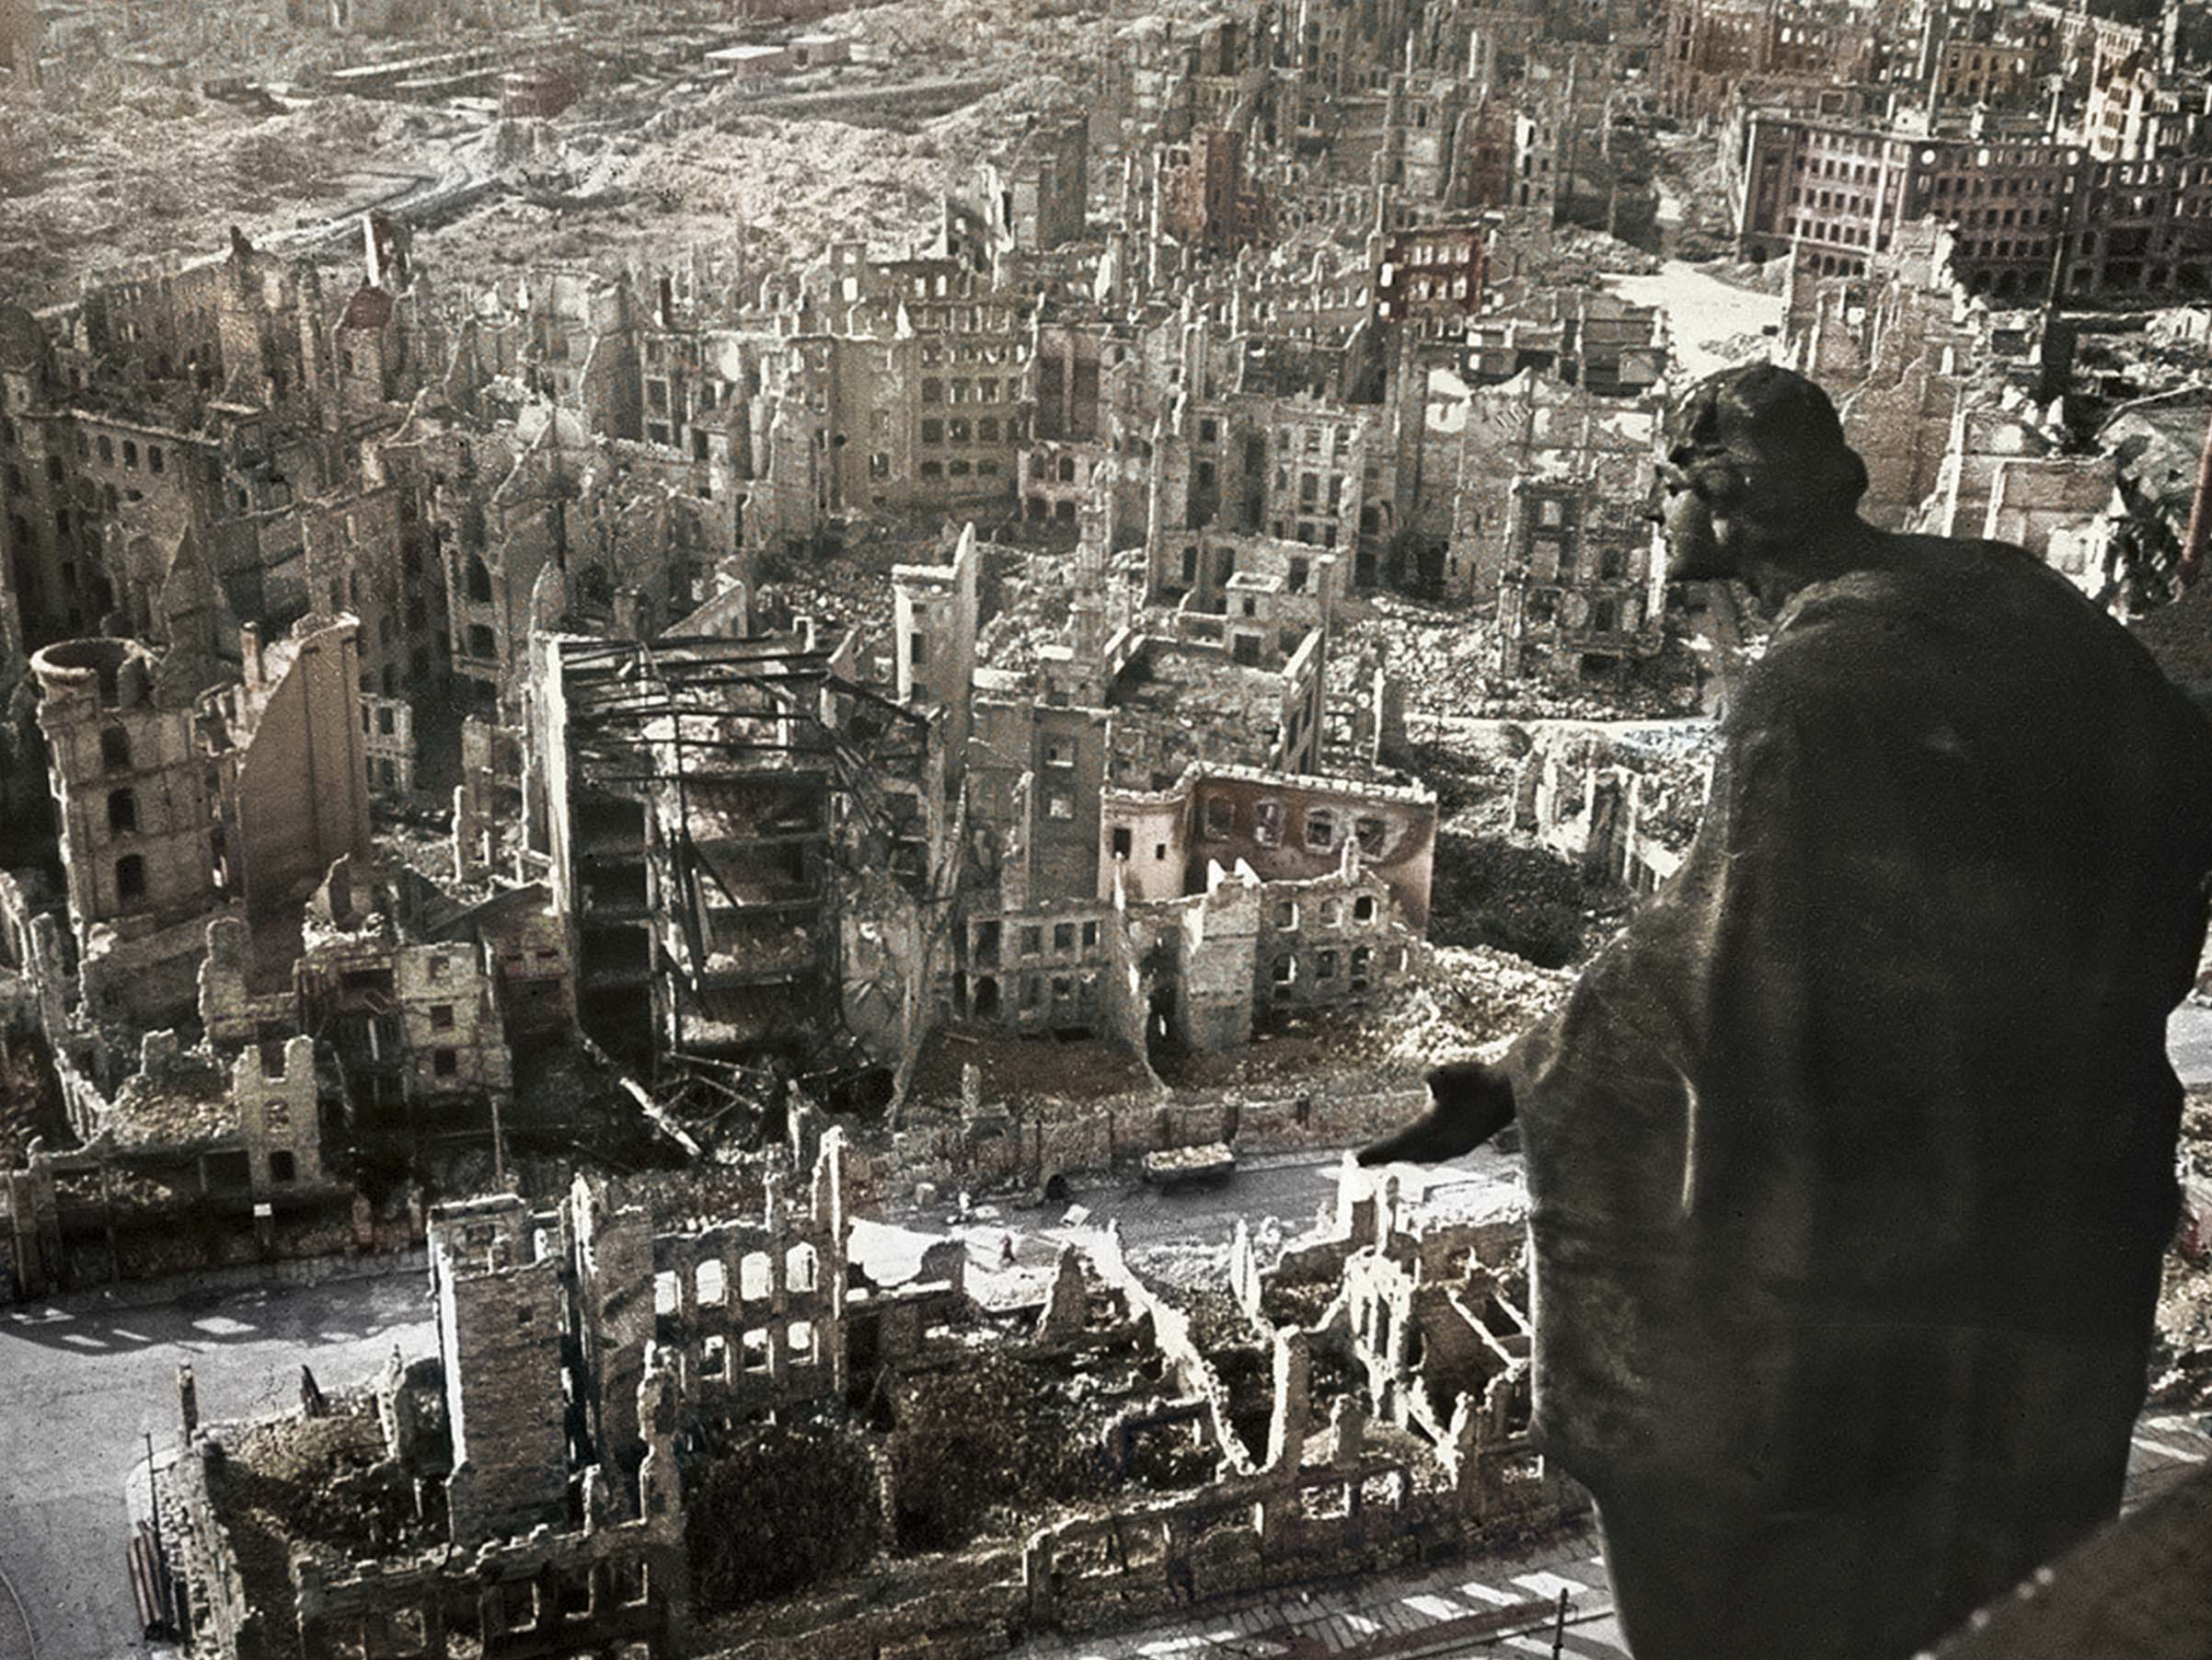 Kurt Vonnegut: How Being in the Firebombing of Dresden as a Prisoner of War Shaped His Vision and Work